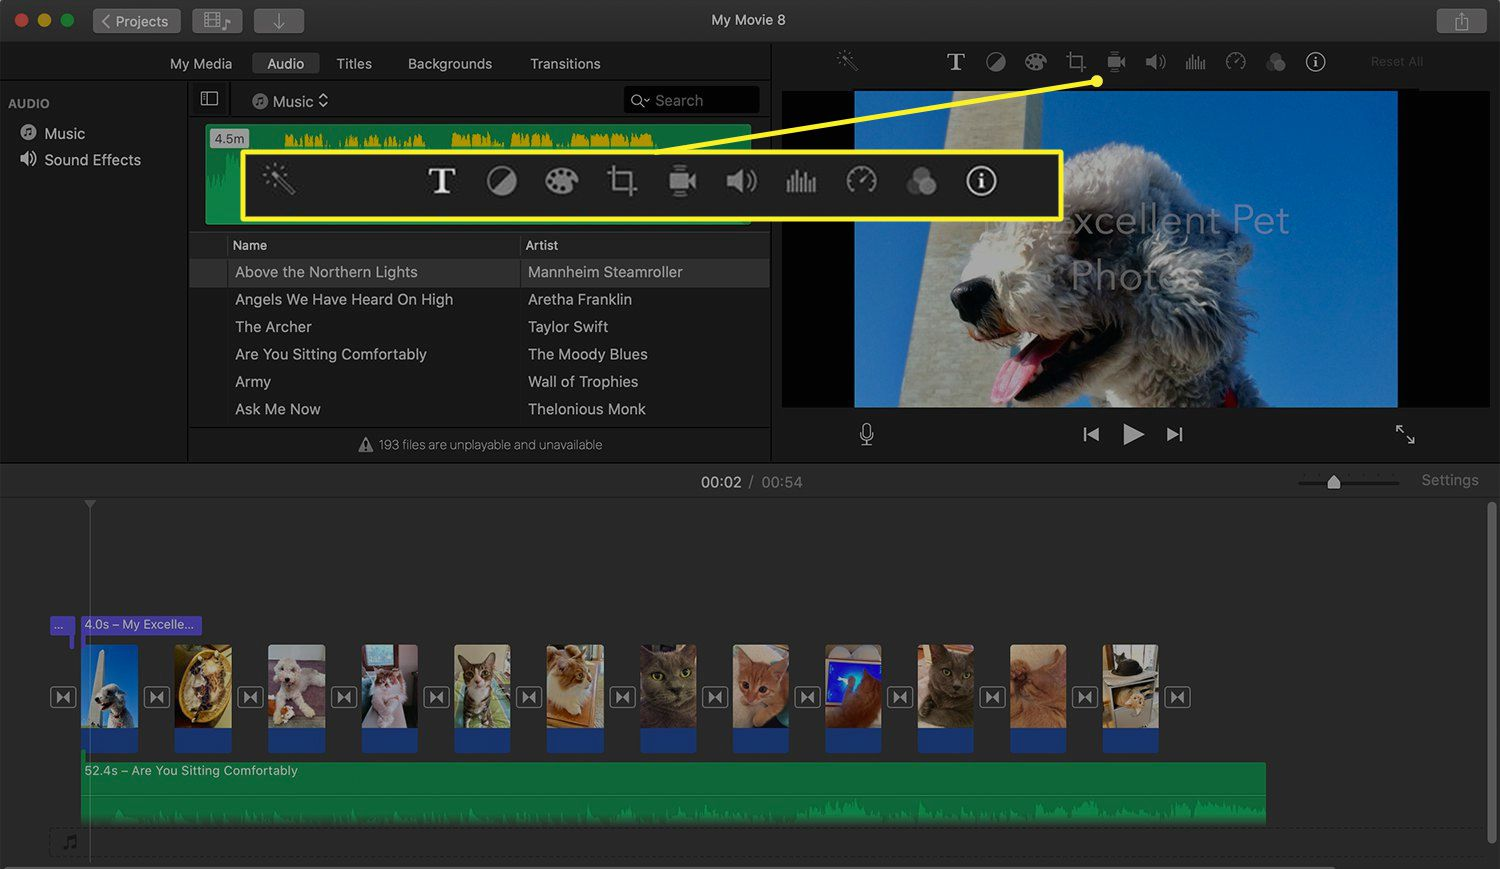 iMovie interface showing Advanced Tools location